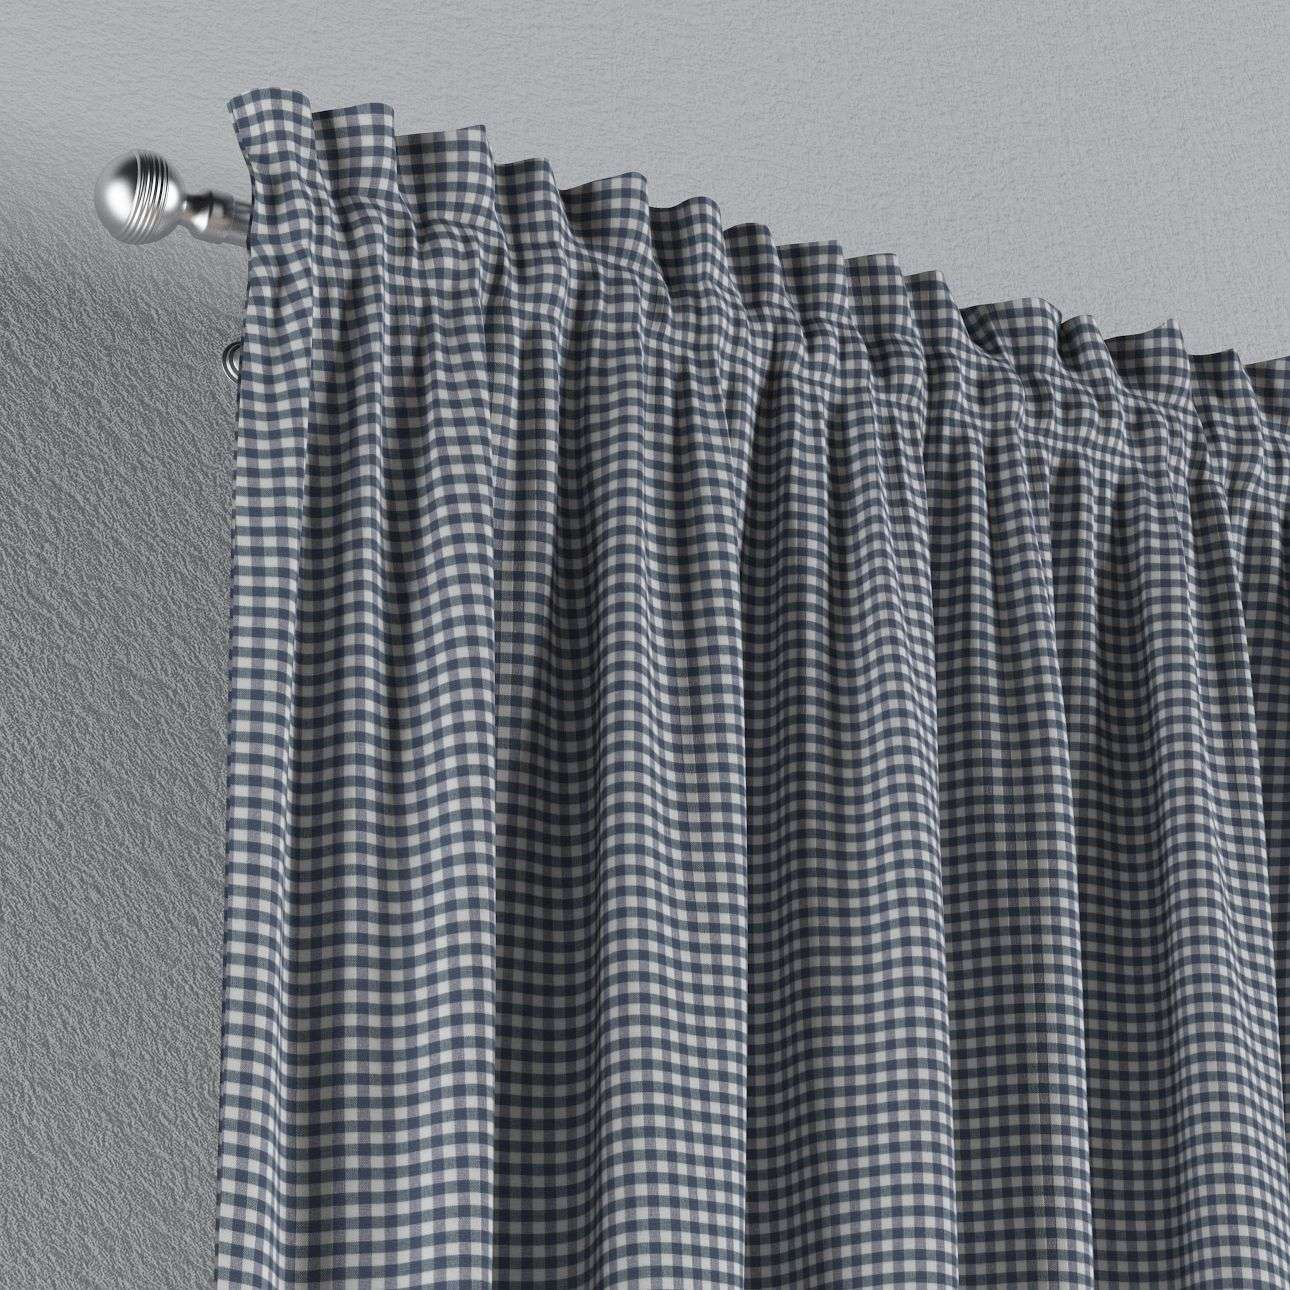 Slot and frill curtains 130 × 260 cm (51 × 102 inch) in collection Quadro, fabric: 136-00